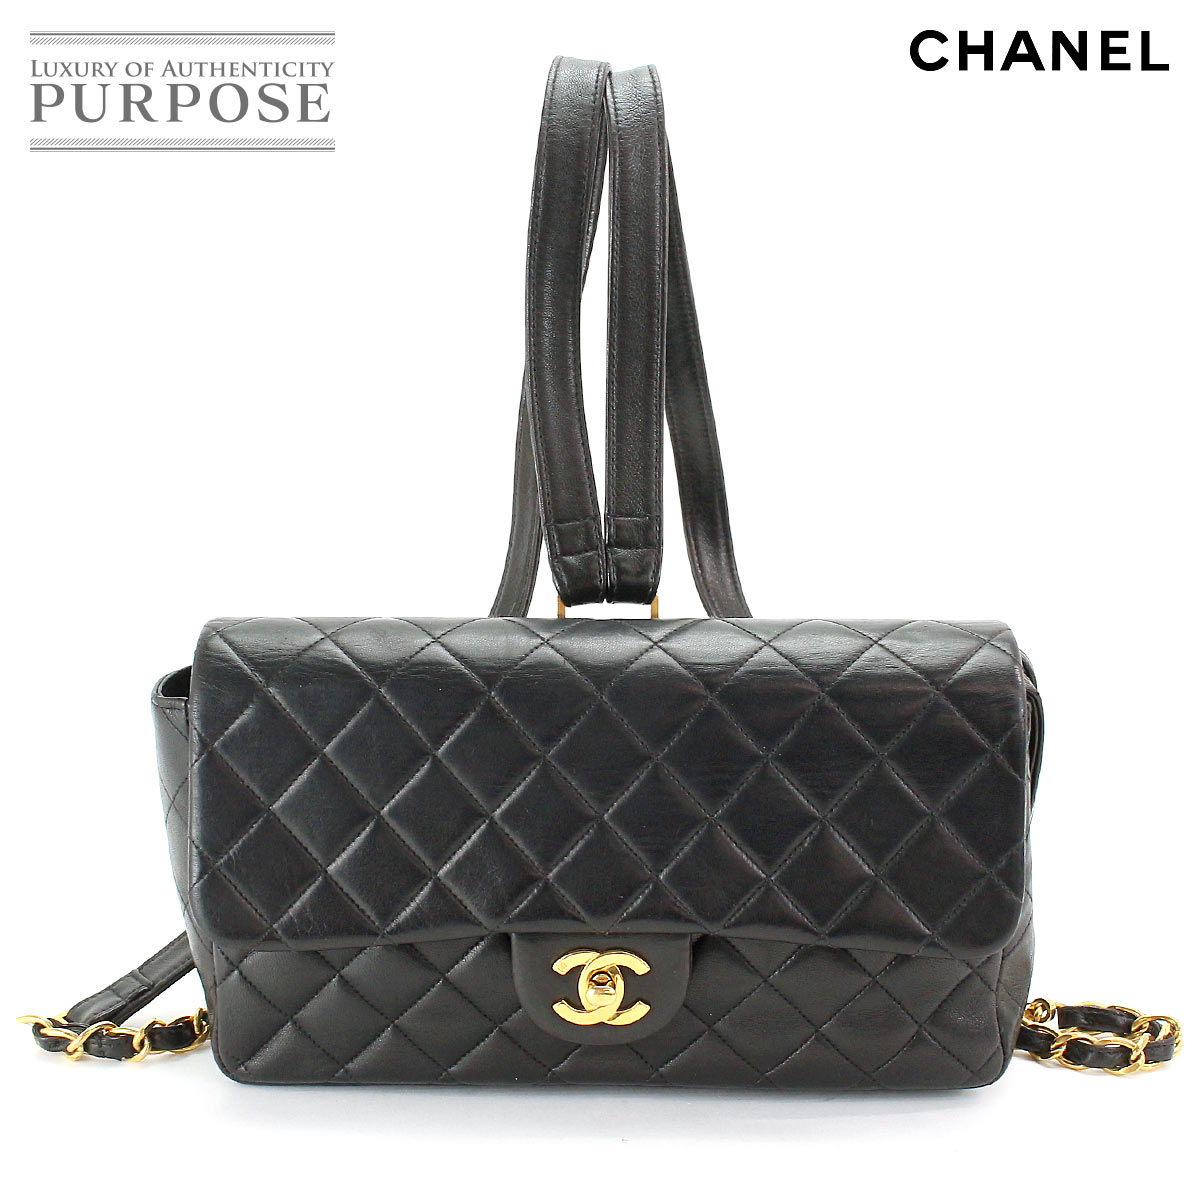 4d8943478829 Chanel CHANEL matelasse chain rucksack backpack leather black [used] brand